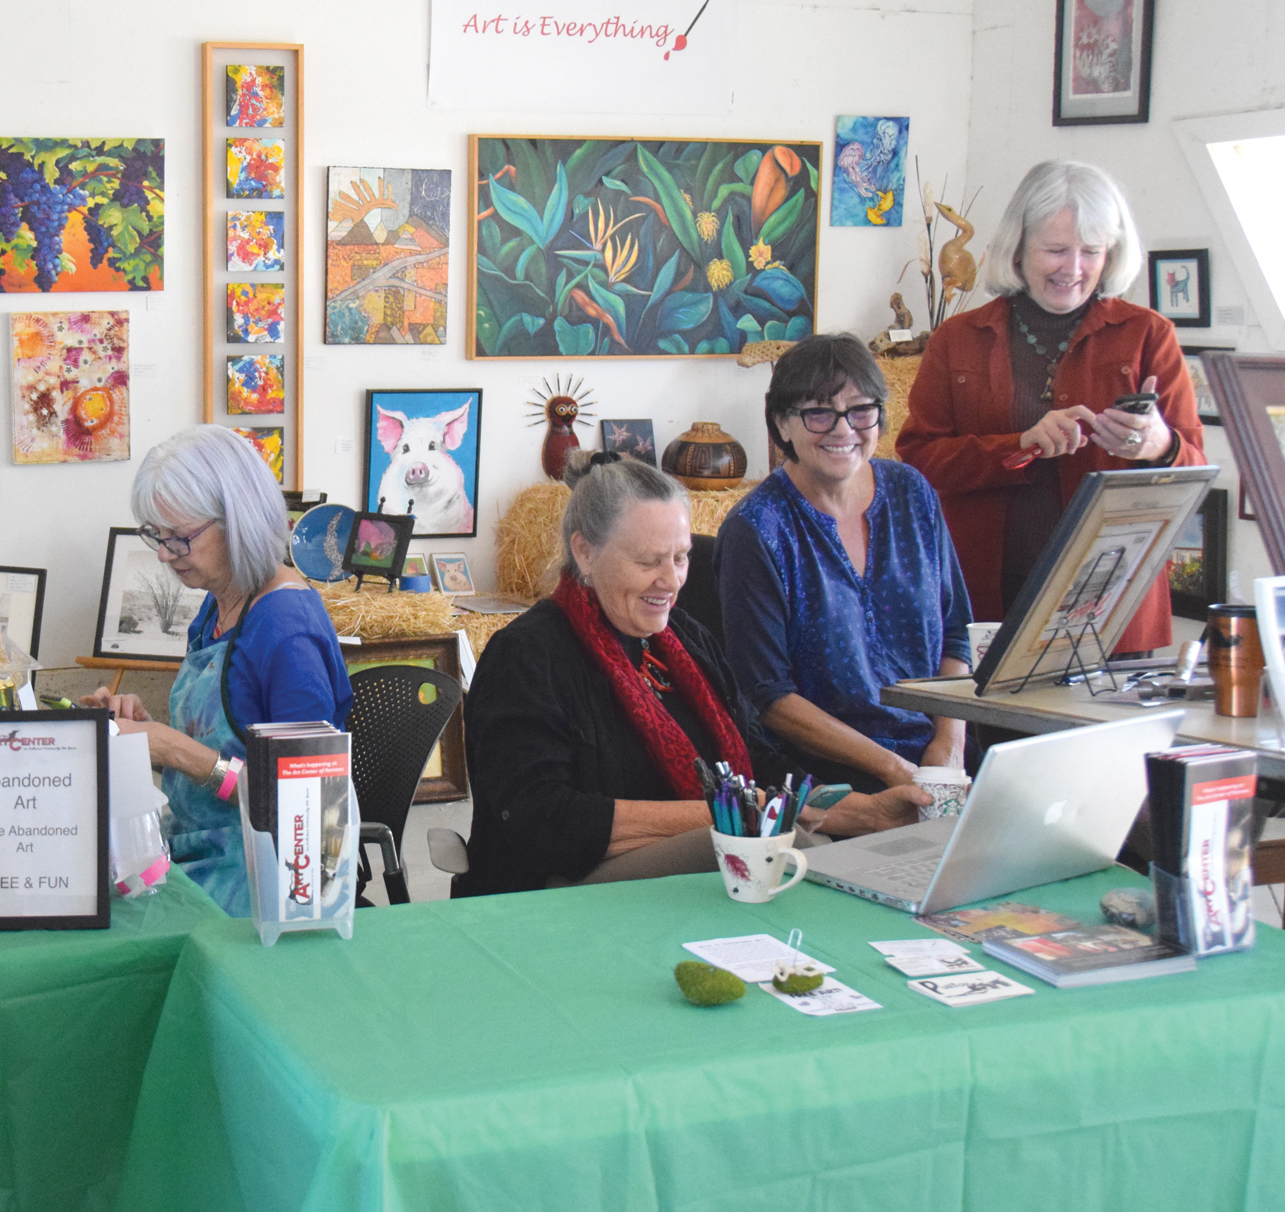 Festival guests and artists had the opportunity to complete art projects during the event. Photo by Angela McLaughlin.